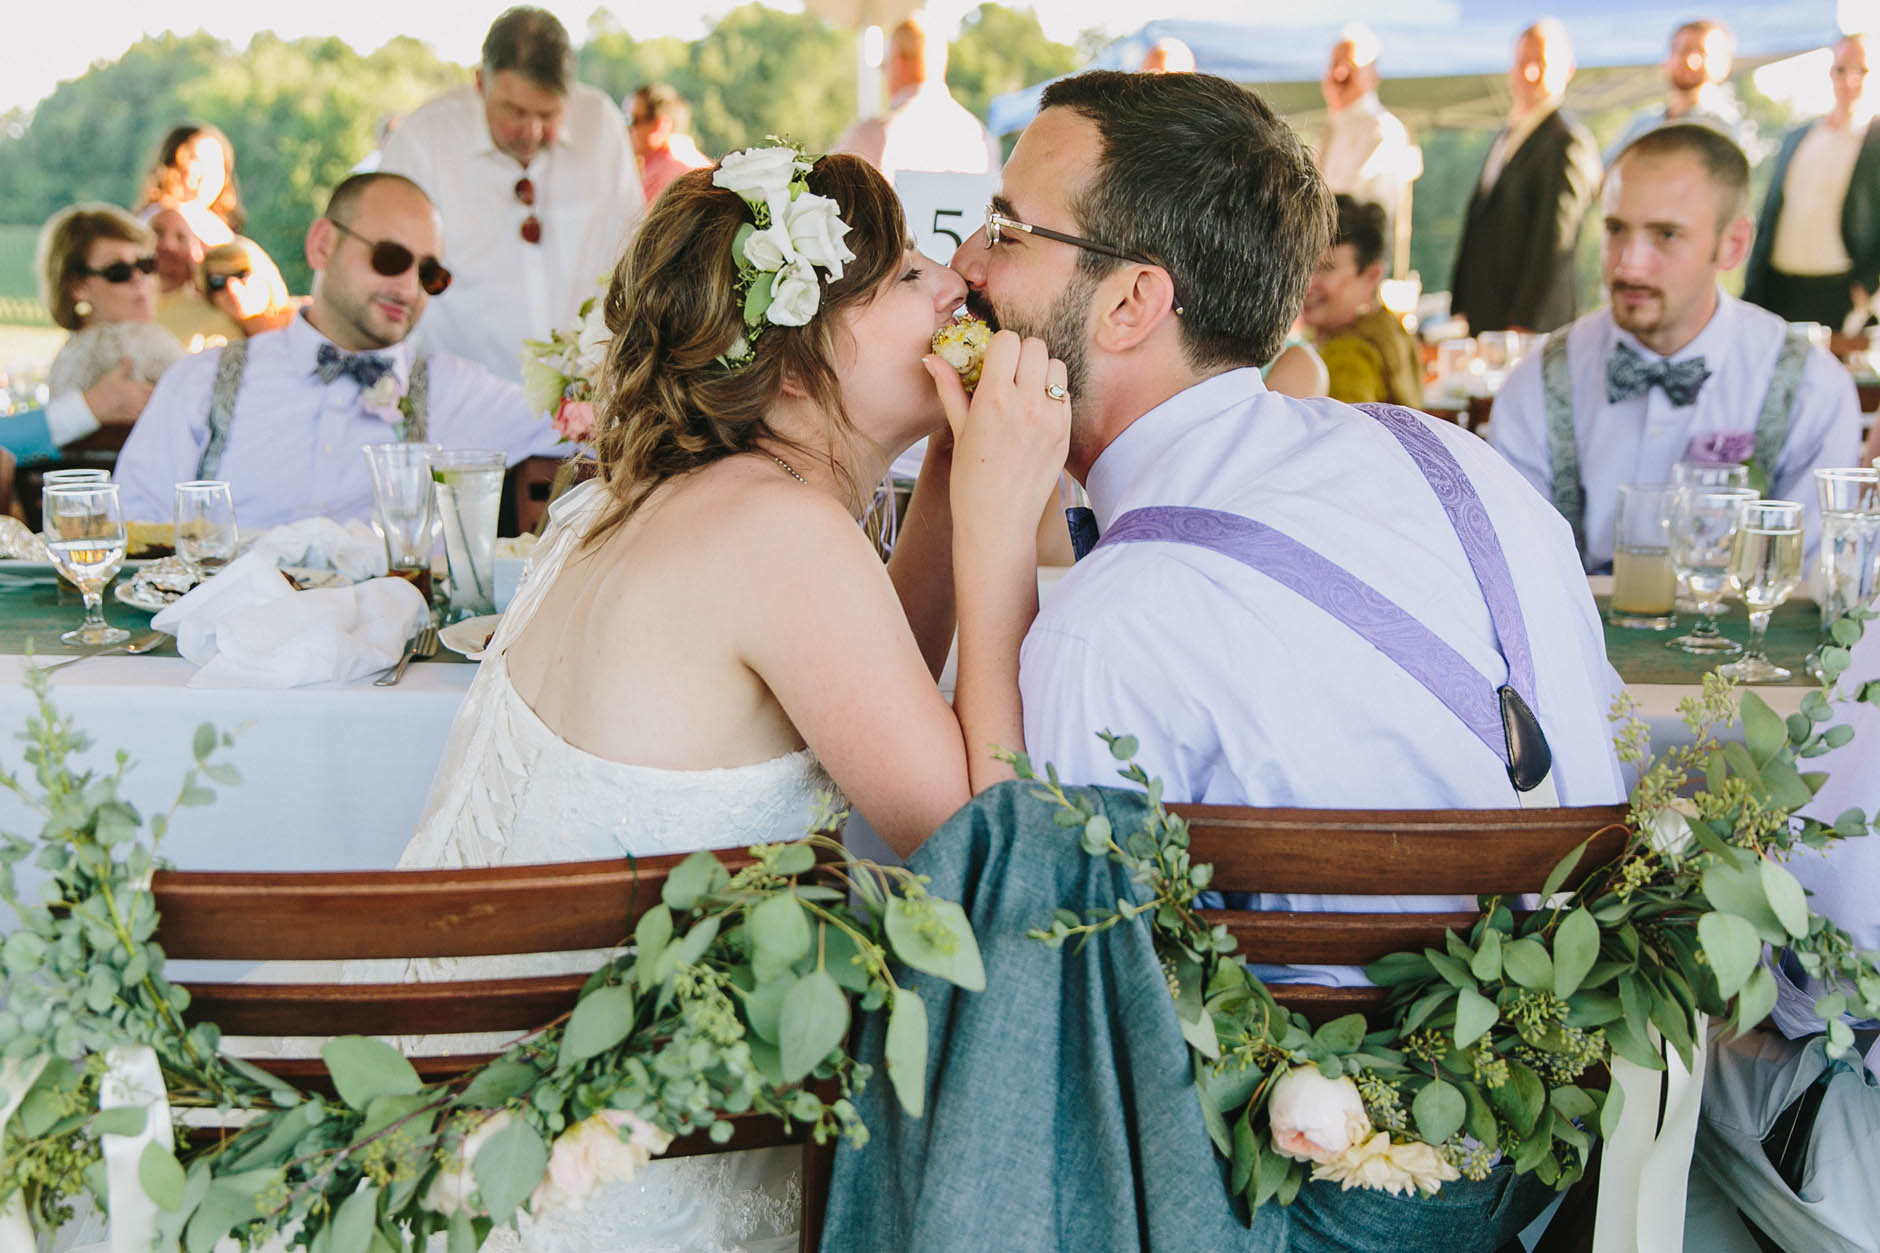 A backyard country wedding in Mt. Vernon with Laura & Fletcher.